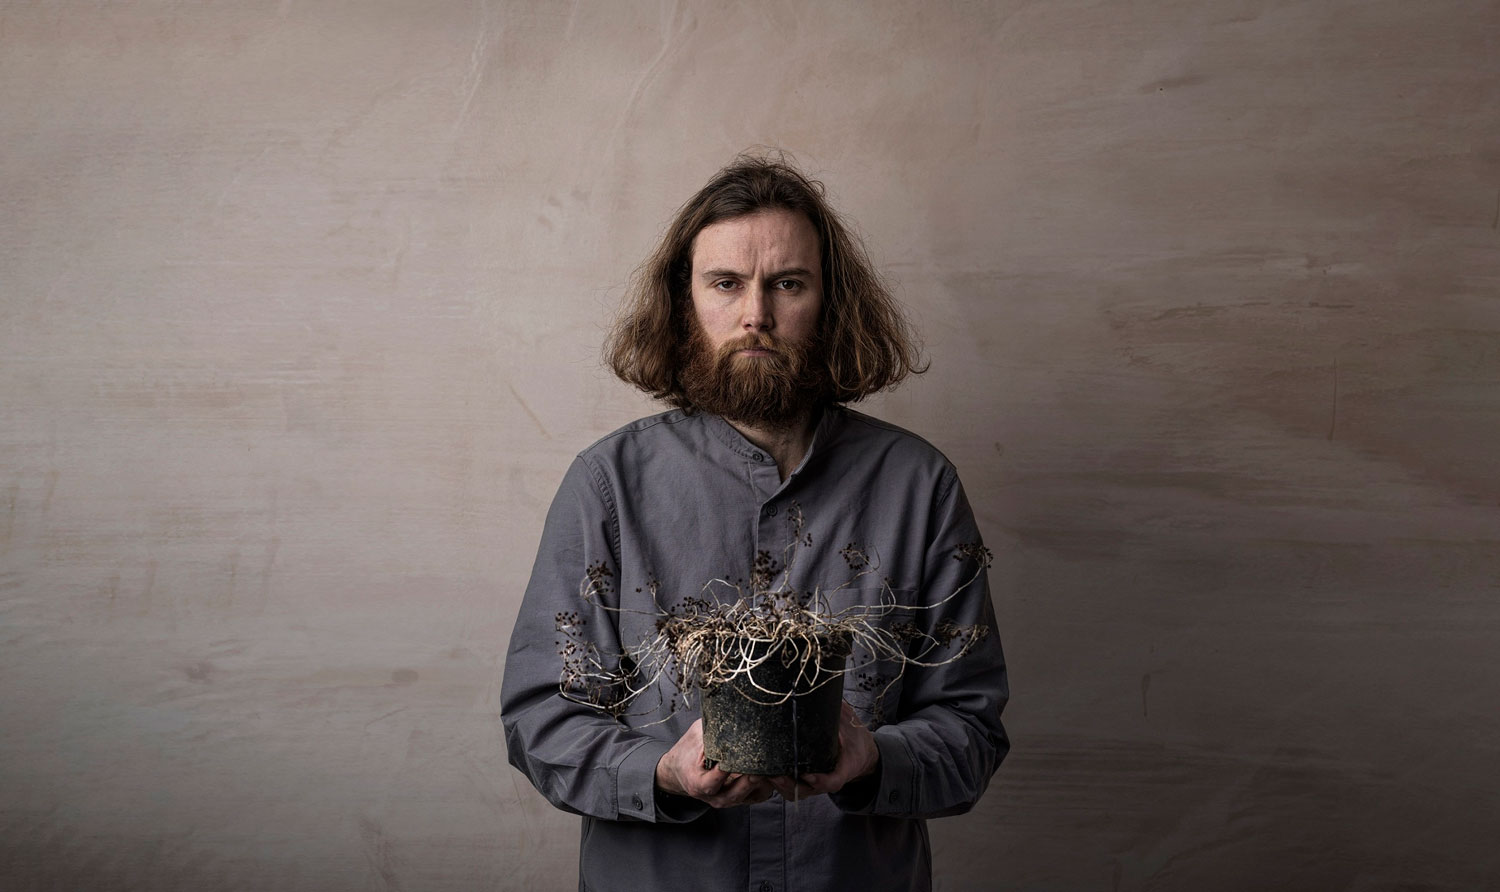 An image of the comedian Rob Auton looking gloomy holding a dead plant depicting the passage of time